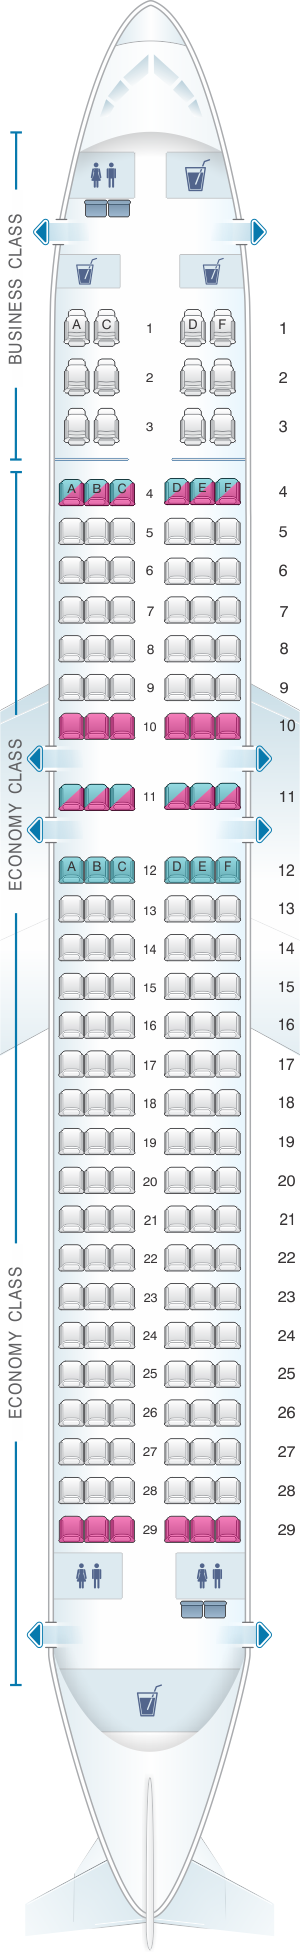 Seat map for Rossiya Airlines Airbus A320 156PAX